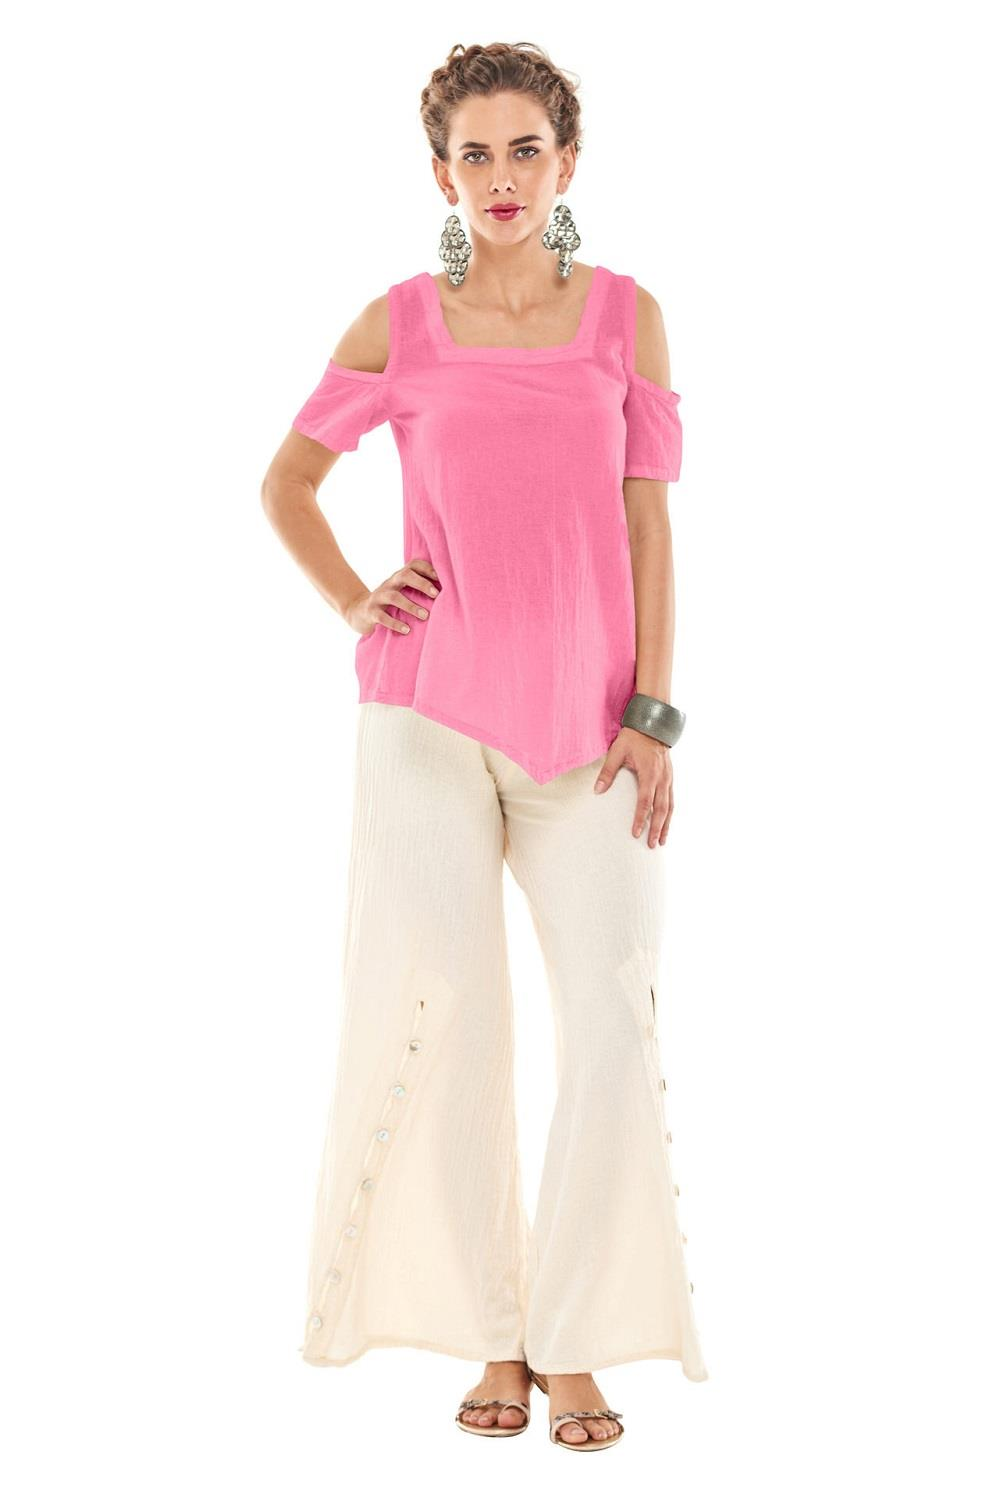 Oh My Gauze Dana Top at www.threewildwomen.ca | Free shipping over $200 North America